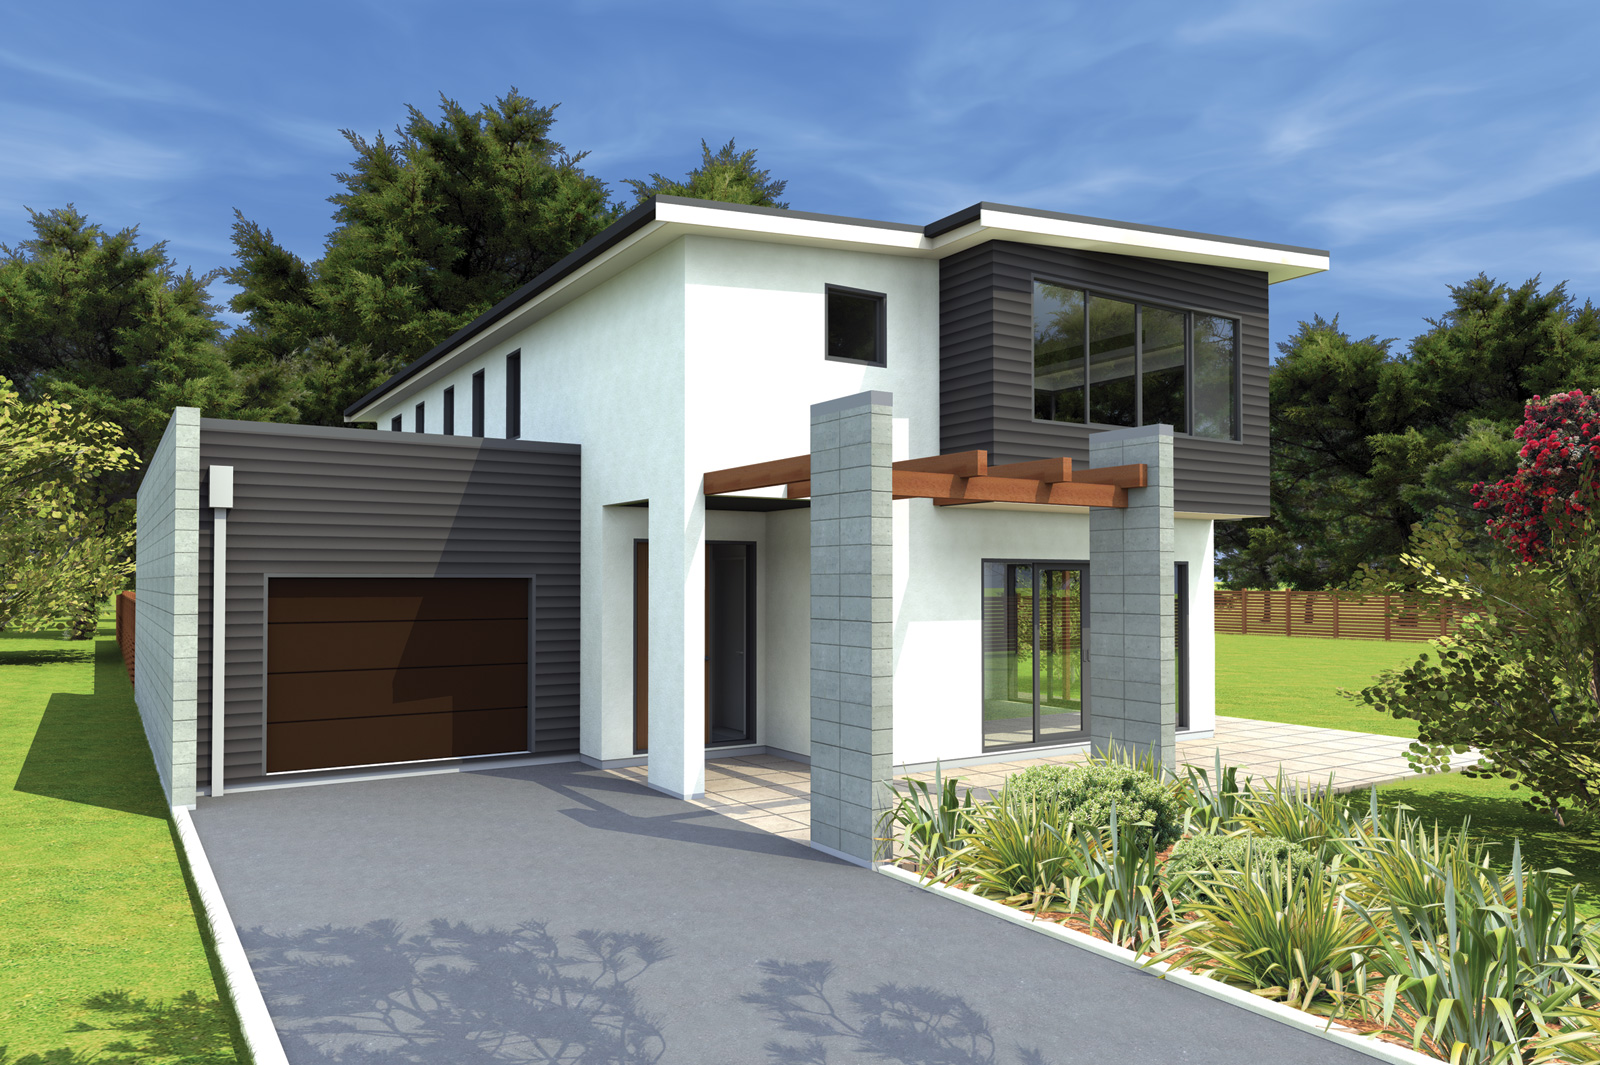 New home designs latest new modern homes designs new for Simple small modern house